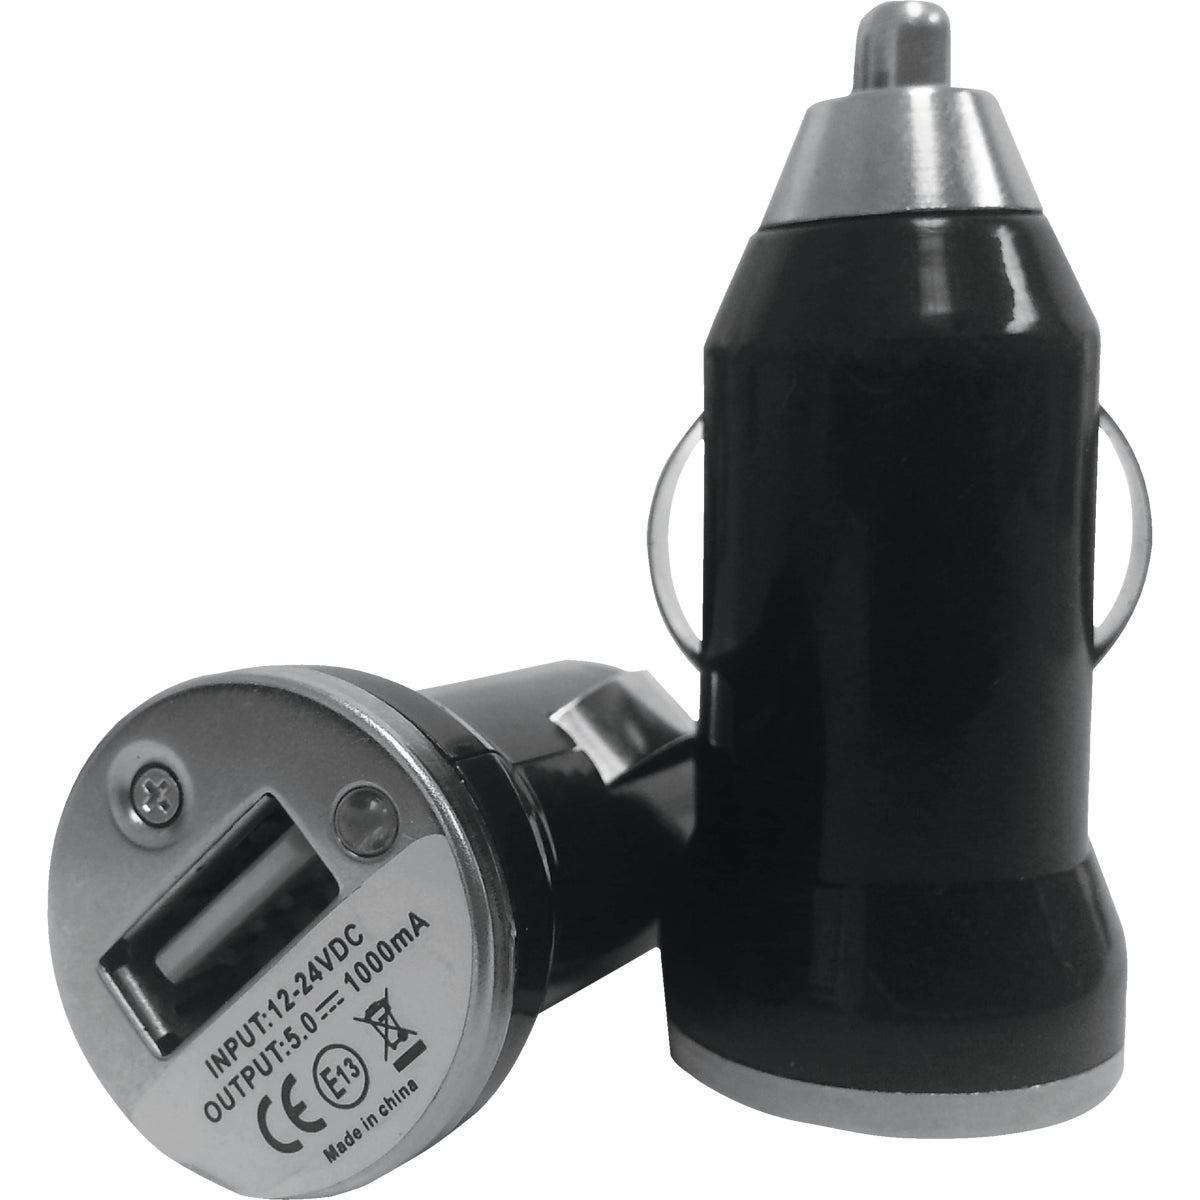 CAR CHARGER ADAPTOR - 1410319 by GoGo Tech